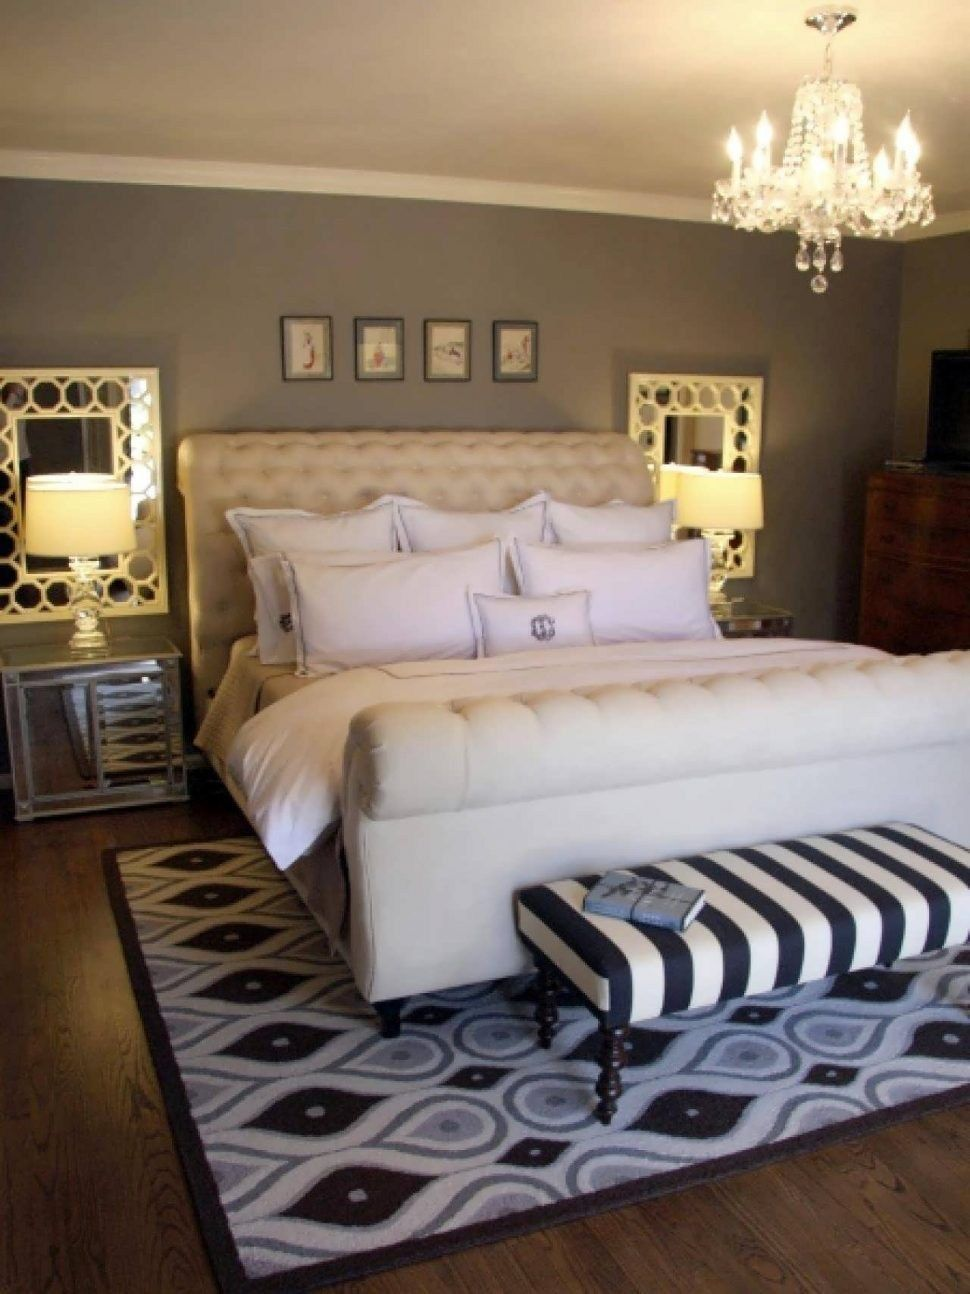 Couple Bedroom Ideas Bedroom More 3 Best Cute Couple Bedroom Ideas